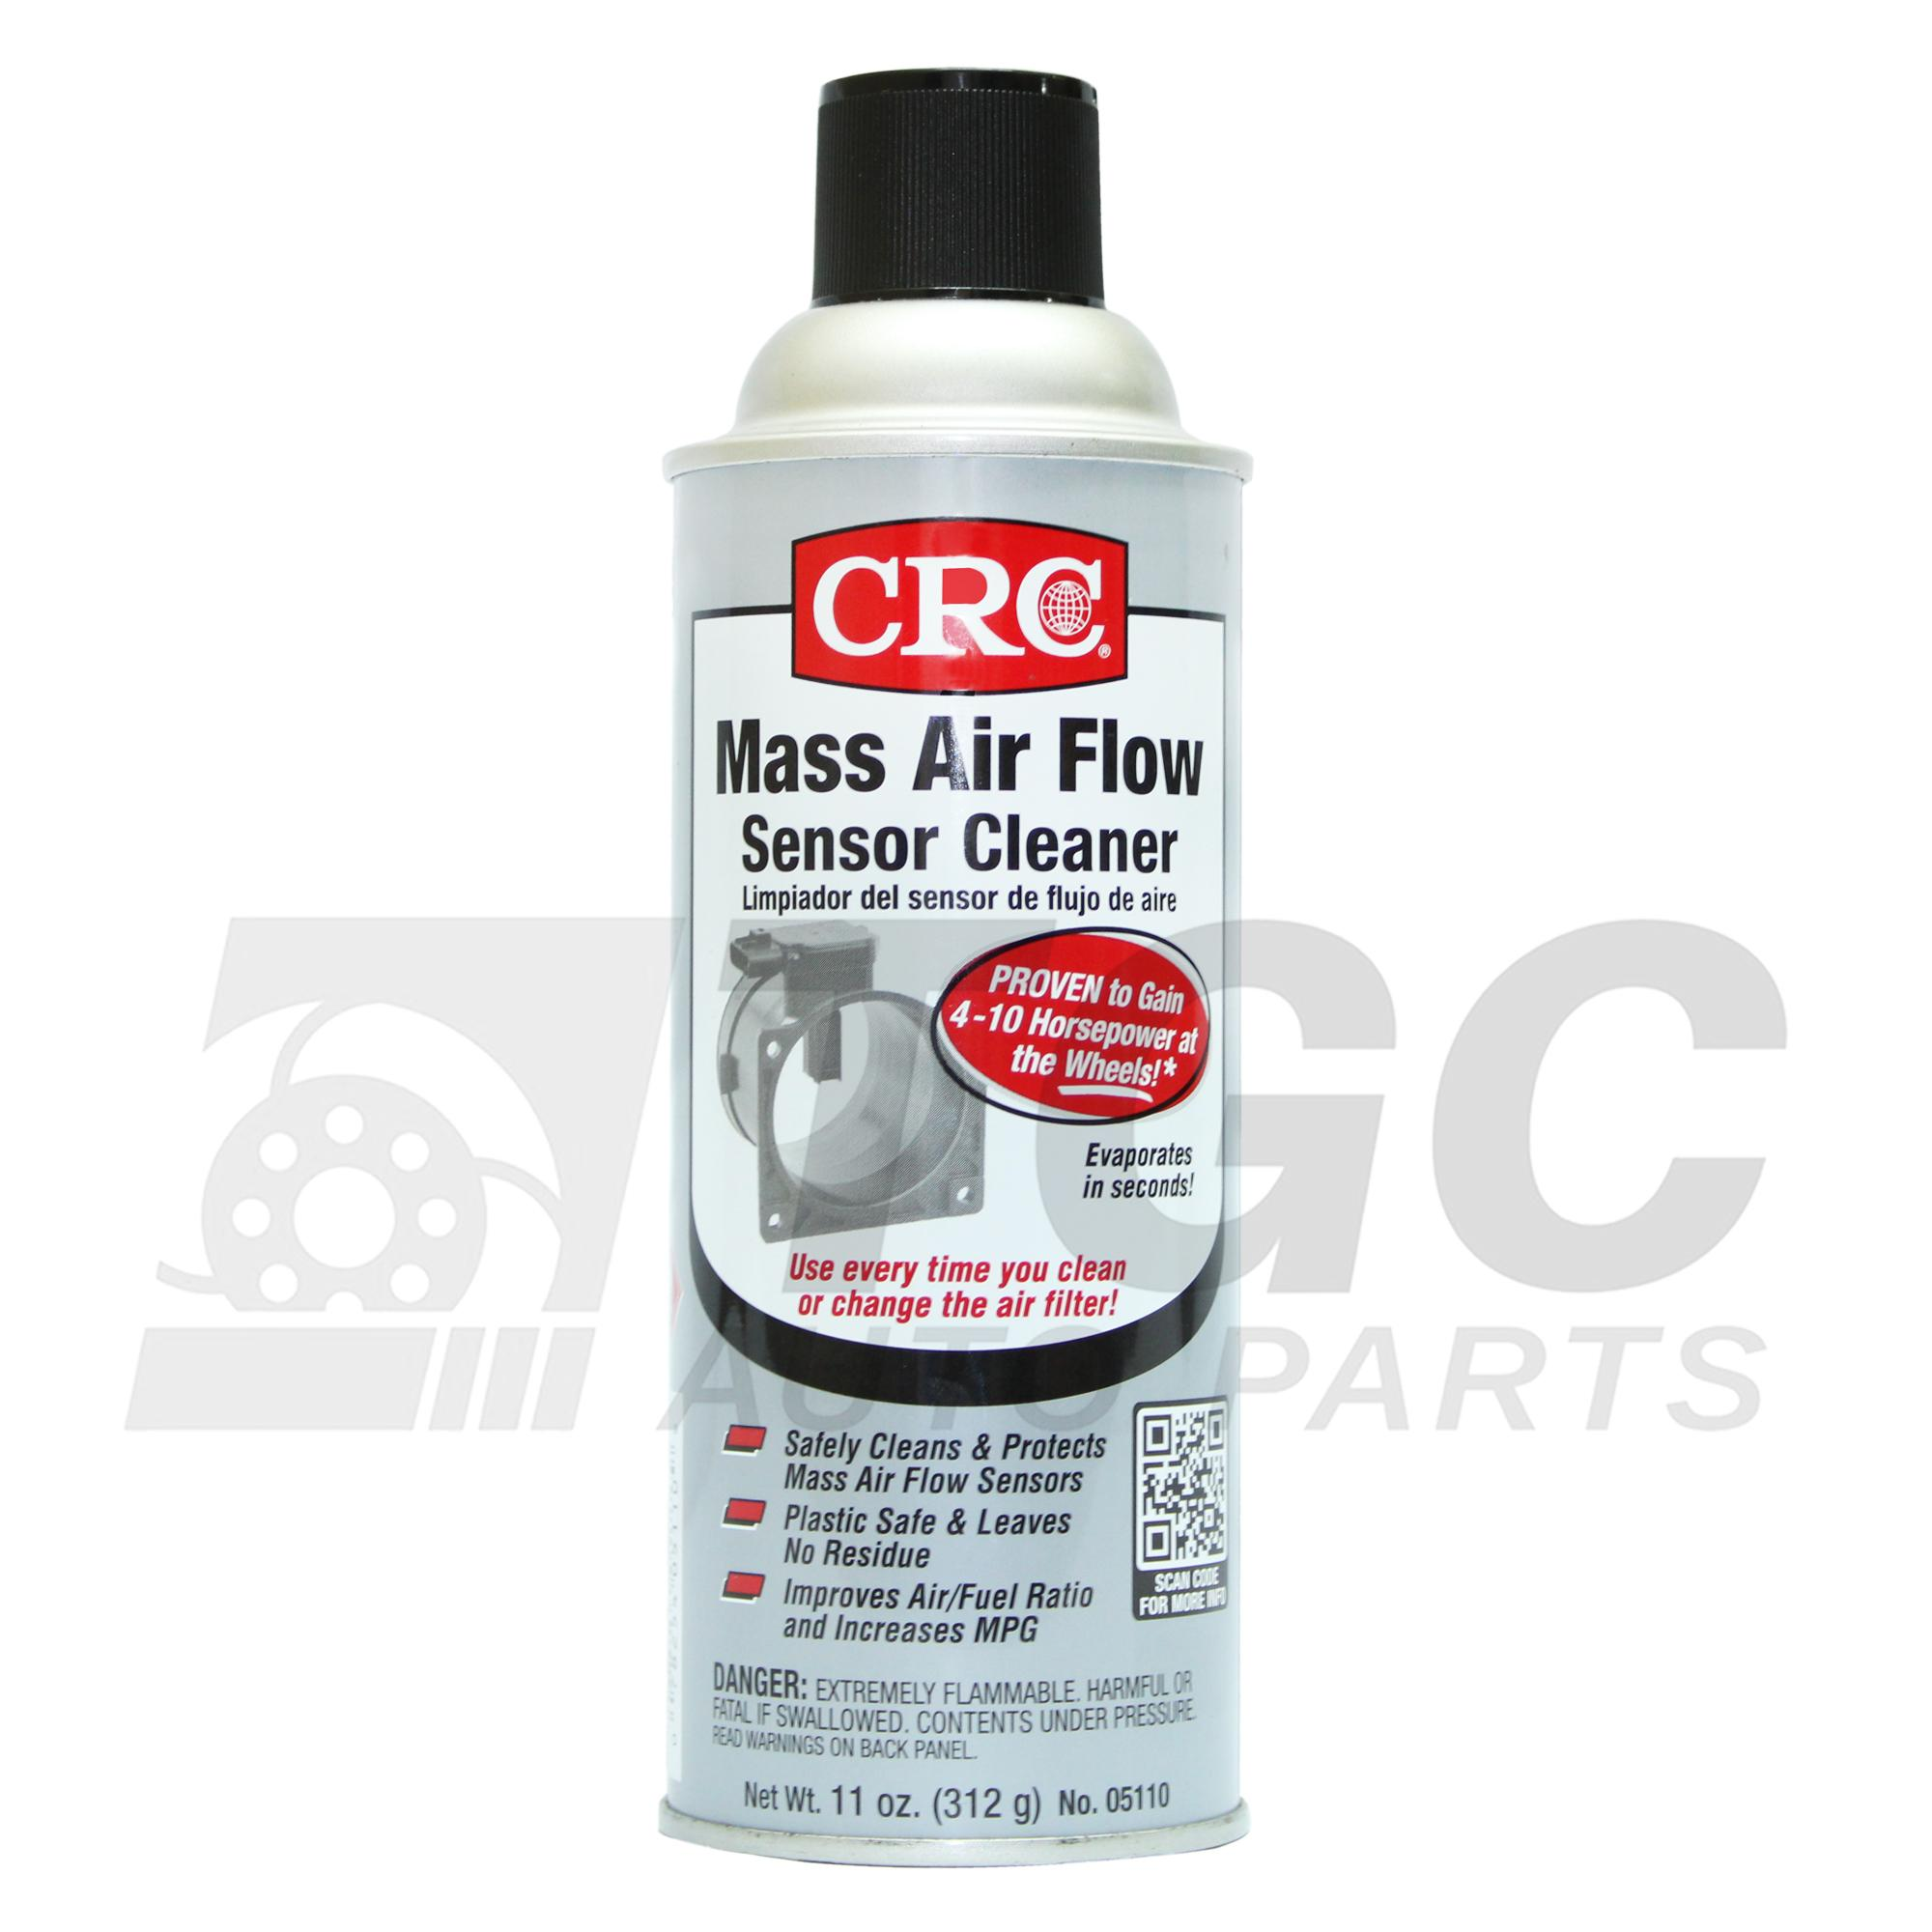 Crc Mass Air Flow Sensor Cleaner By Tgc Auto Parts.